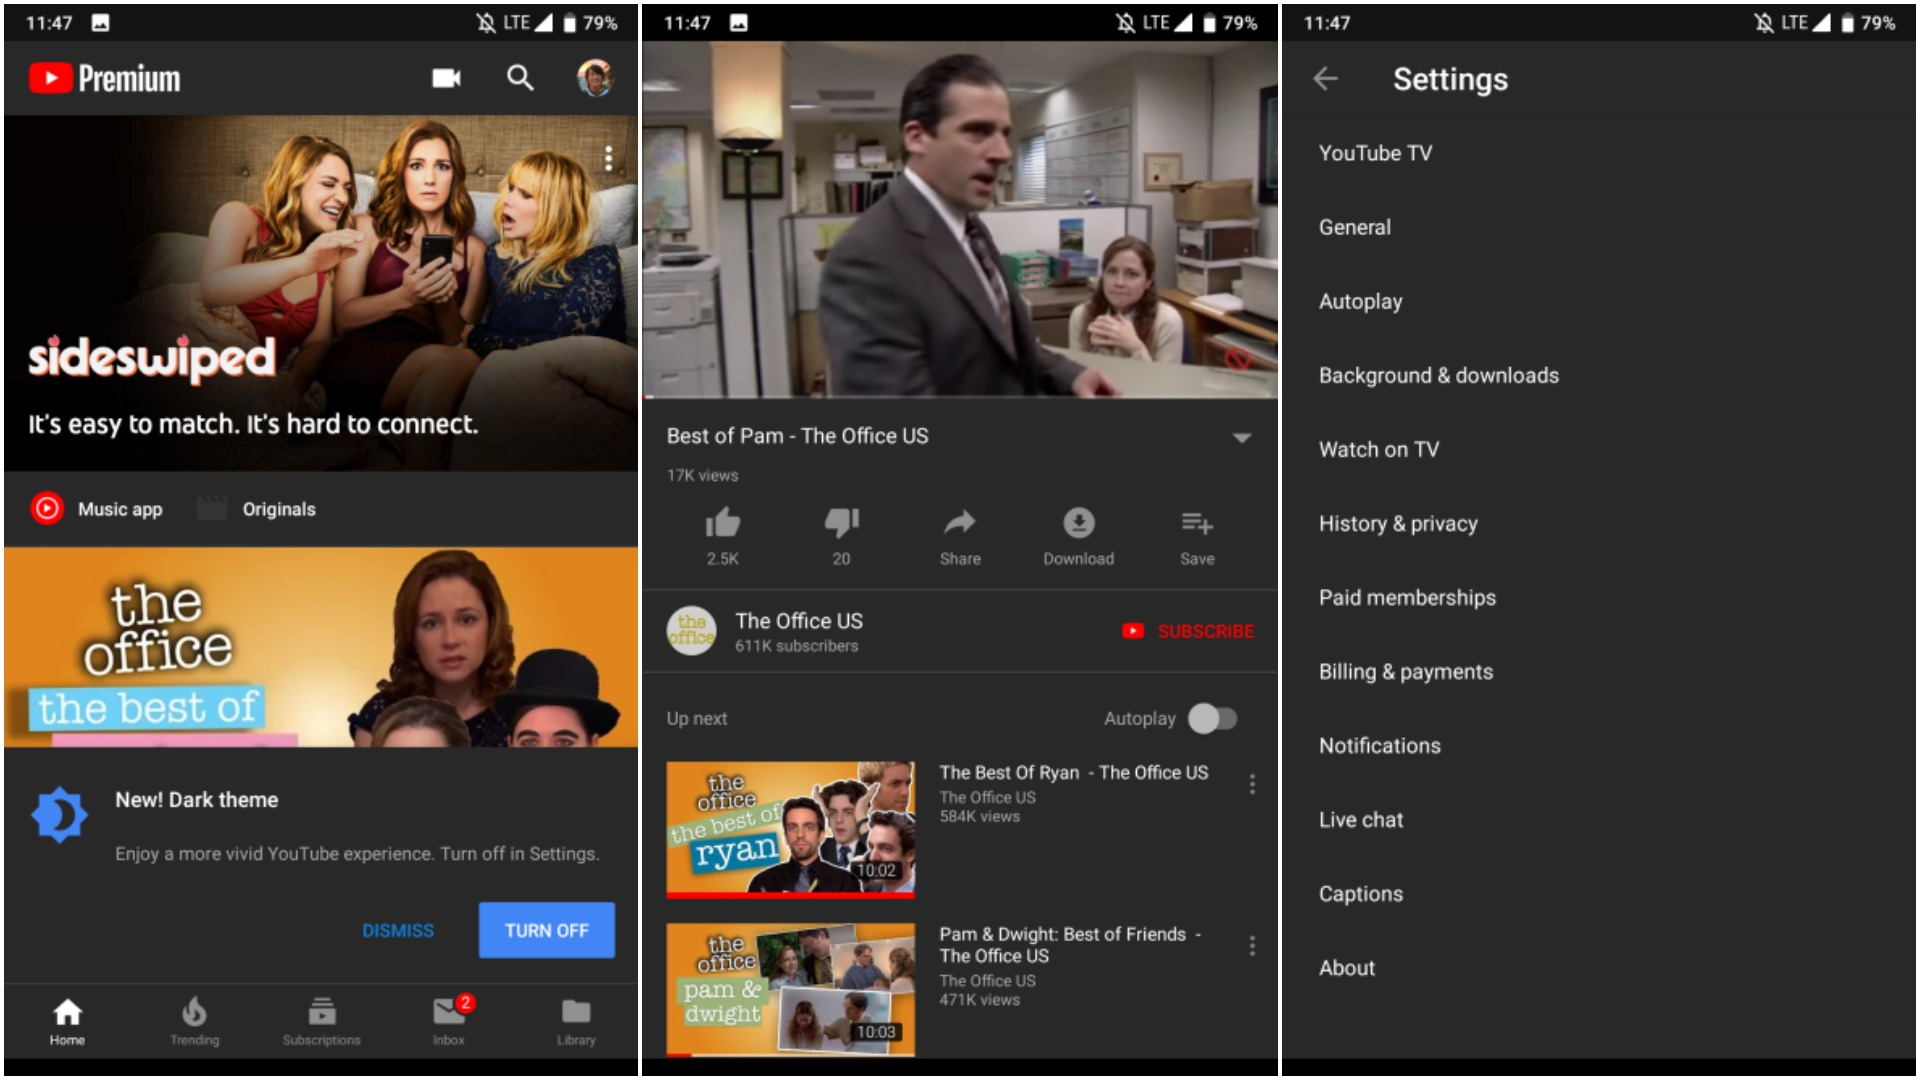 YouTube for Android dark mode